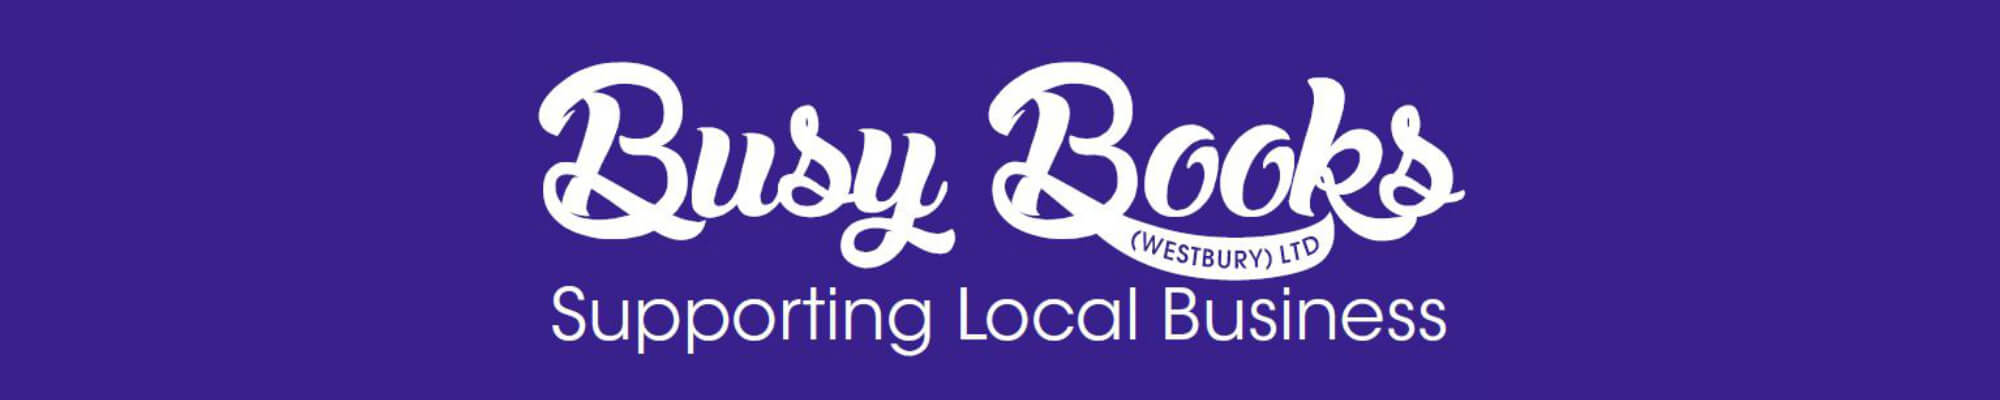 Busy Books (Westbury) Ltd